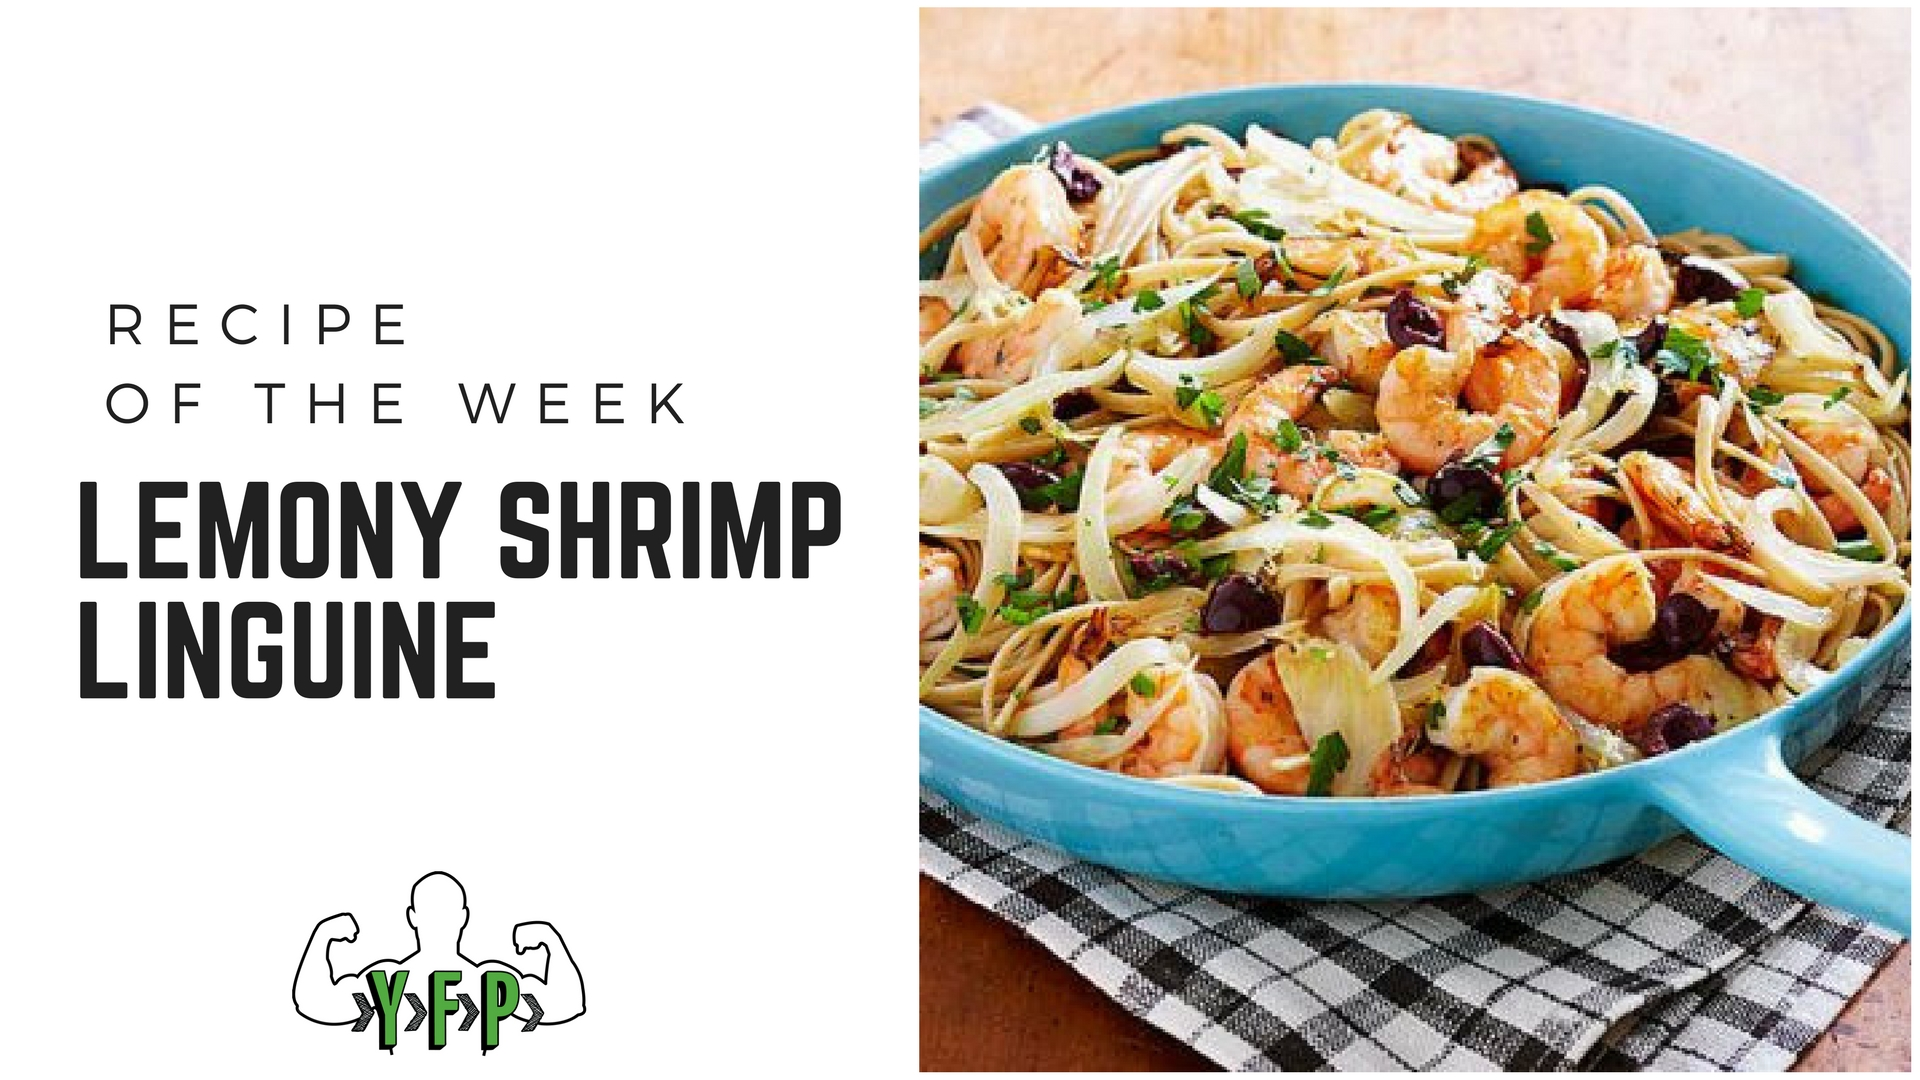 Lemony Shrimp Linguine